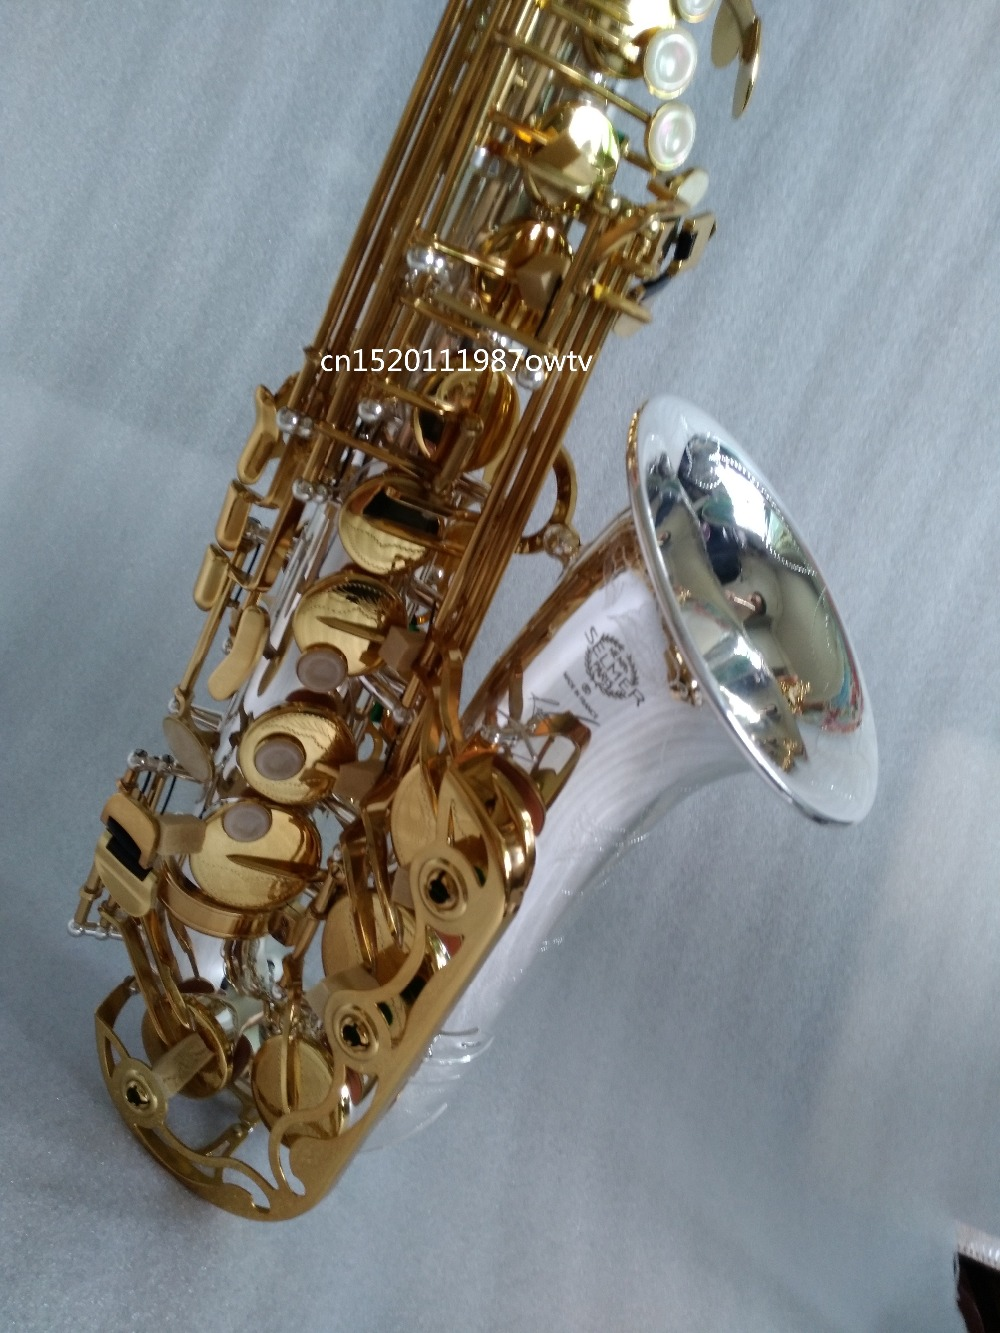 Alto Saxophone Selmer 54 Brass Silver Gold Key E Flat Musical Instruments Saxophone with Cleaning Brush Cloth Gloves Strap Free alto saxophone selmer 54 brass silver gold key e flat musical instruments saxophone with cleaning brush cloth gloves cork strap